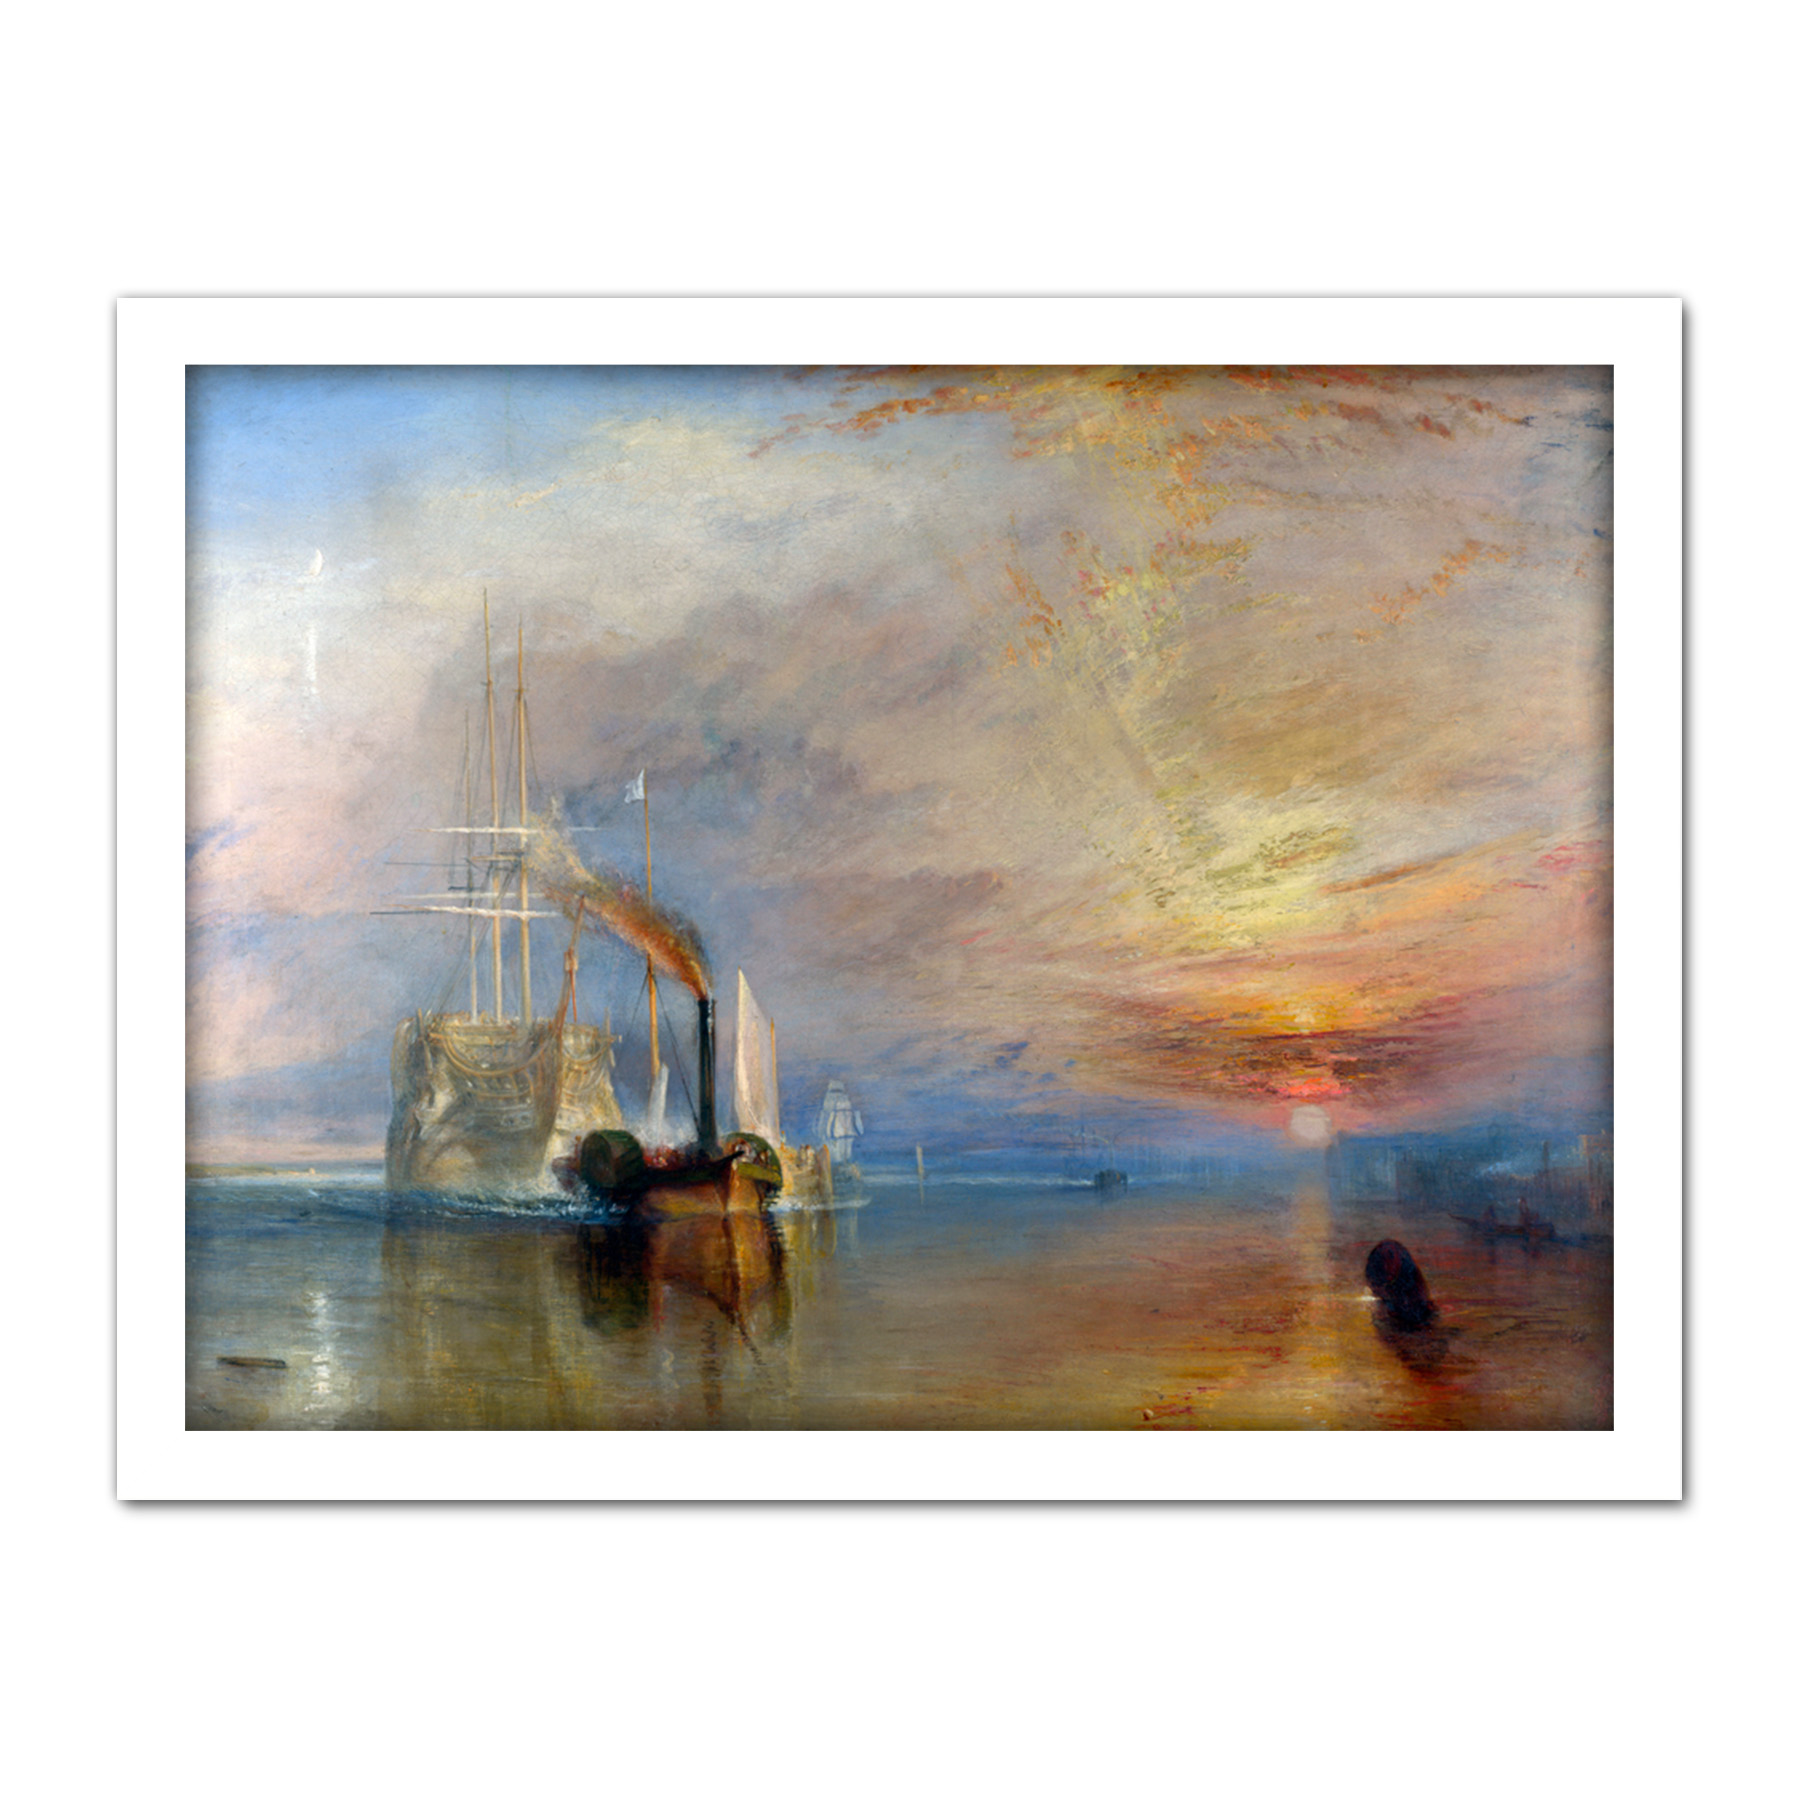 Turner-The-Fighting-Temeraire-Ship-Painting-Framed-Wall-Art-Print-18X24-In thumbnail 21